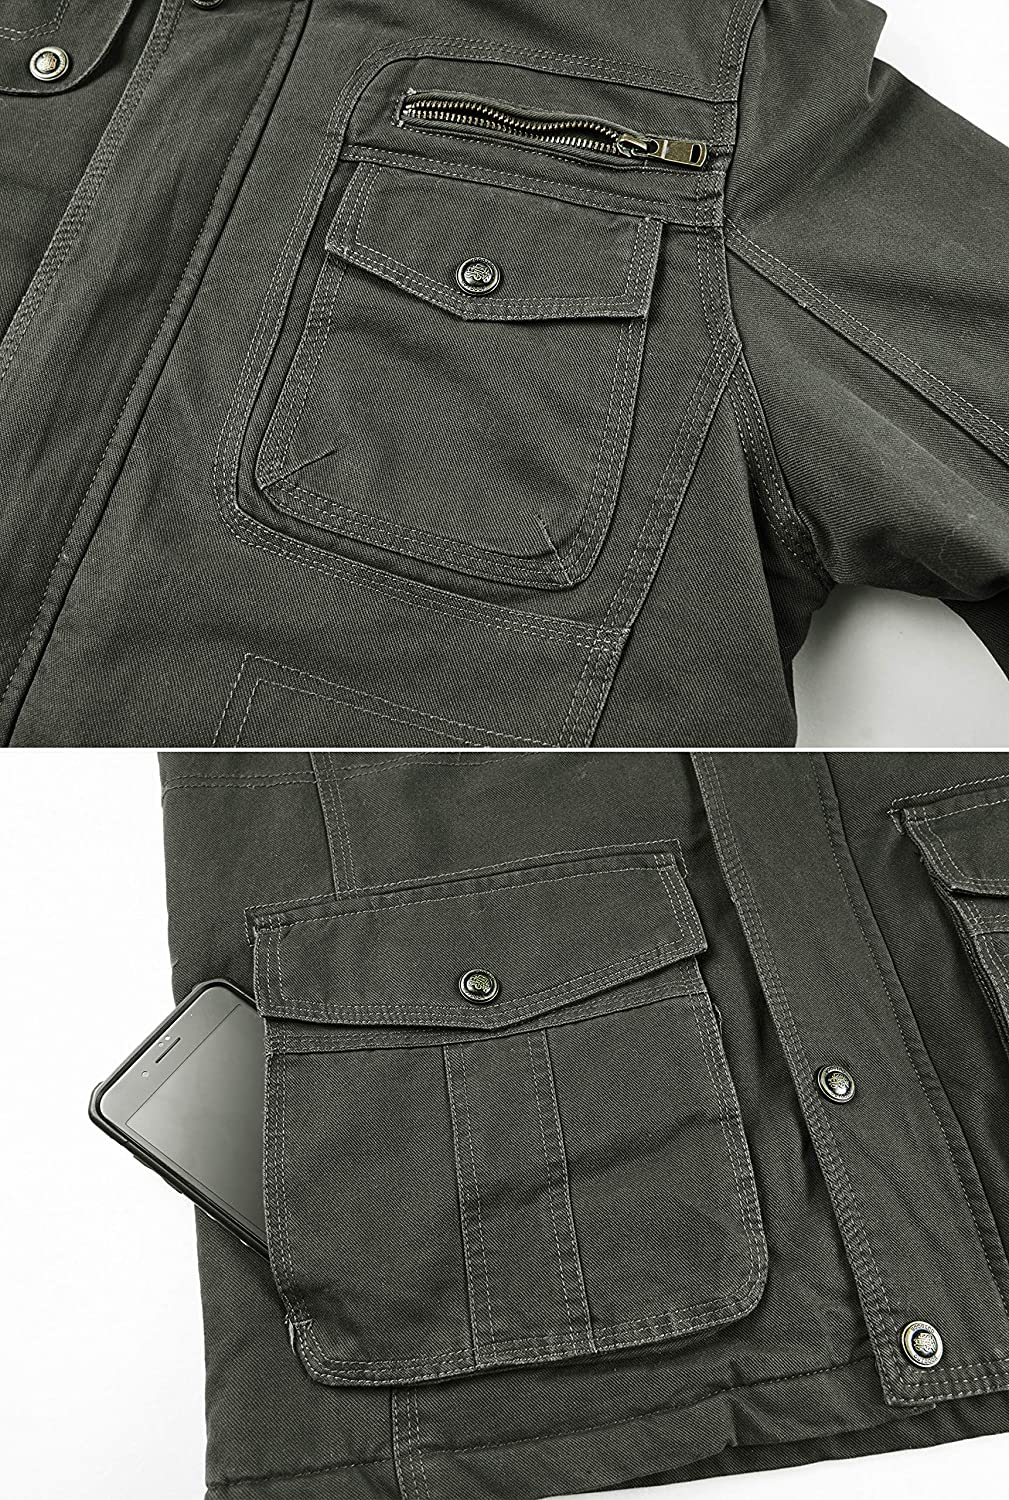 Heihuohua Men/'s Winter Military Jacket Thicken Cotton Coat with Removable Hood